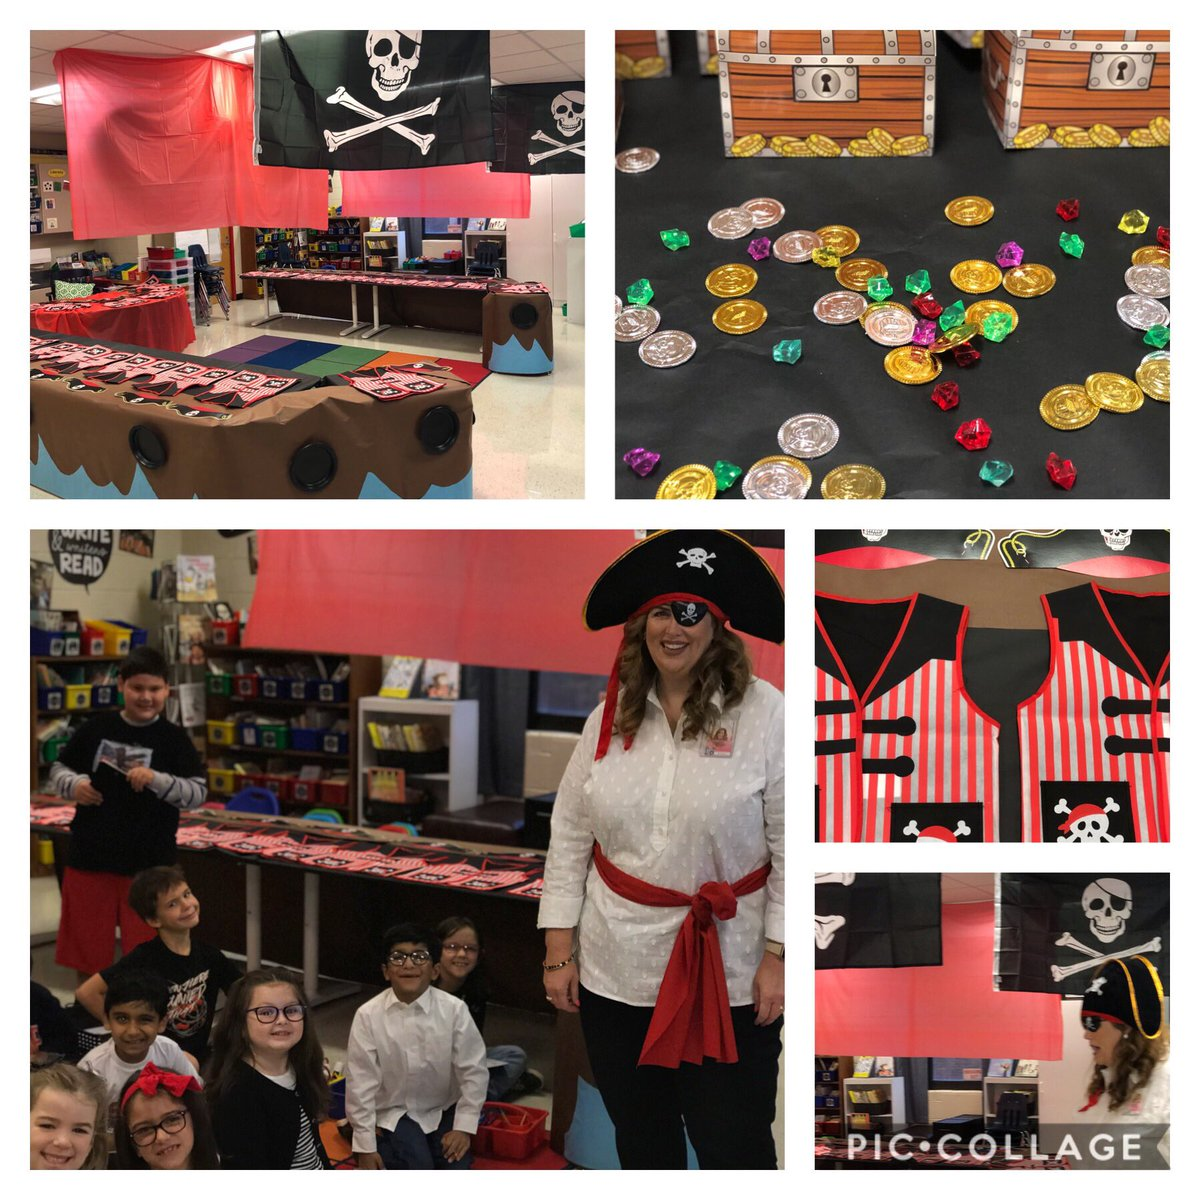 @burgessdave What do you think about these Pirates? #tlap #KidsDeserveIt #CardinalsFlyHigh